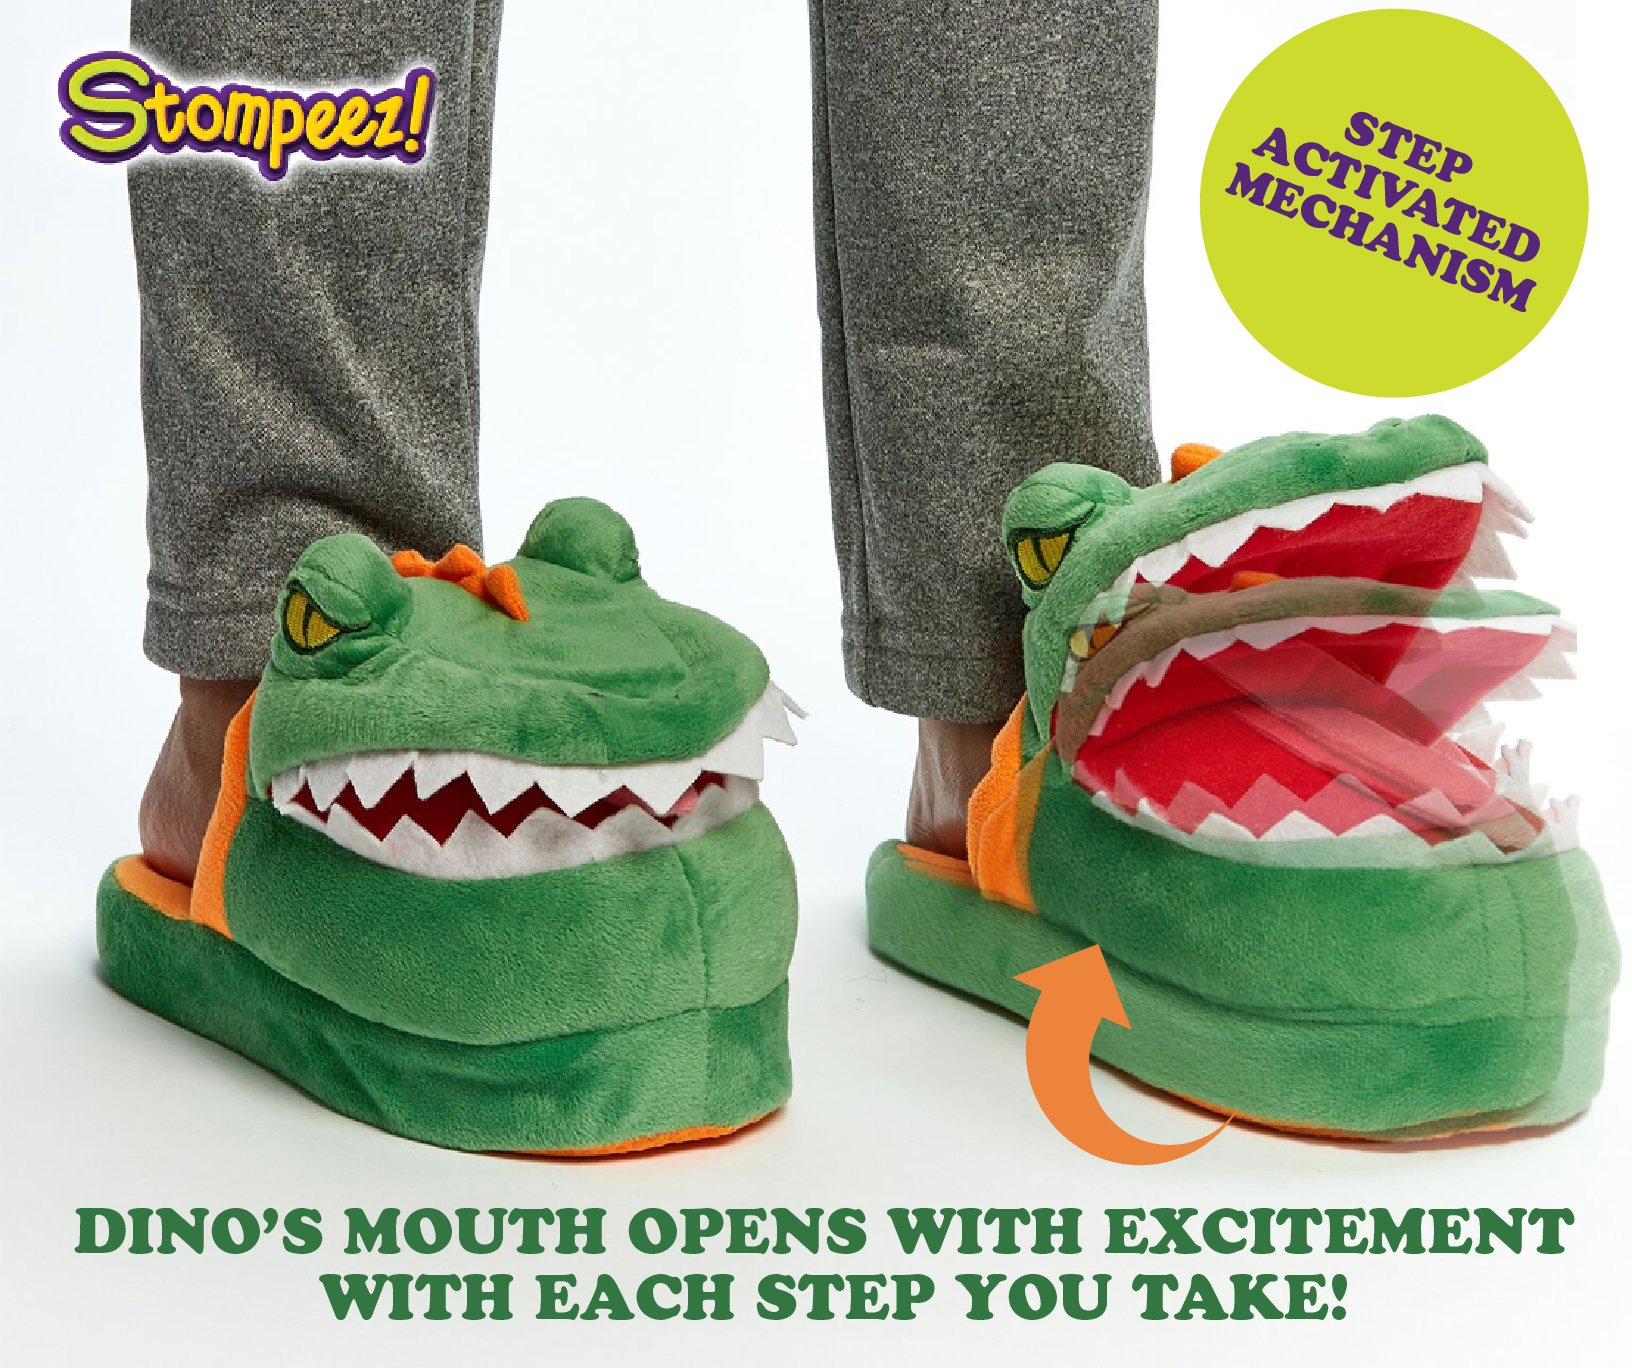 Stompeez Animated Dinosaur T-Rex Plush Slippers - Ultra Soft and Fuzzy - Mouth Opens and closes as You Walk - Medium by Stompeez (Image #2)